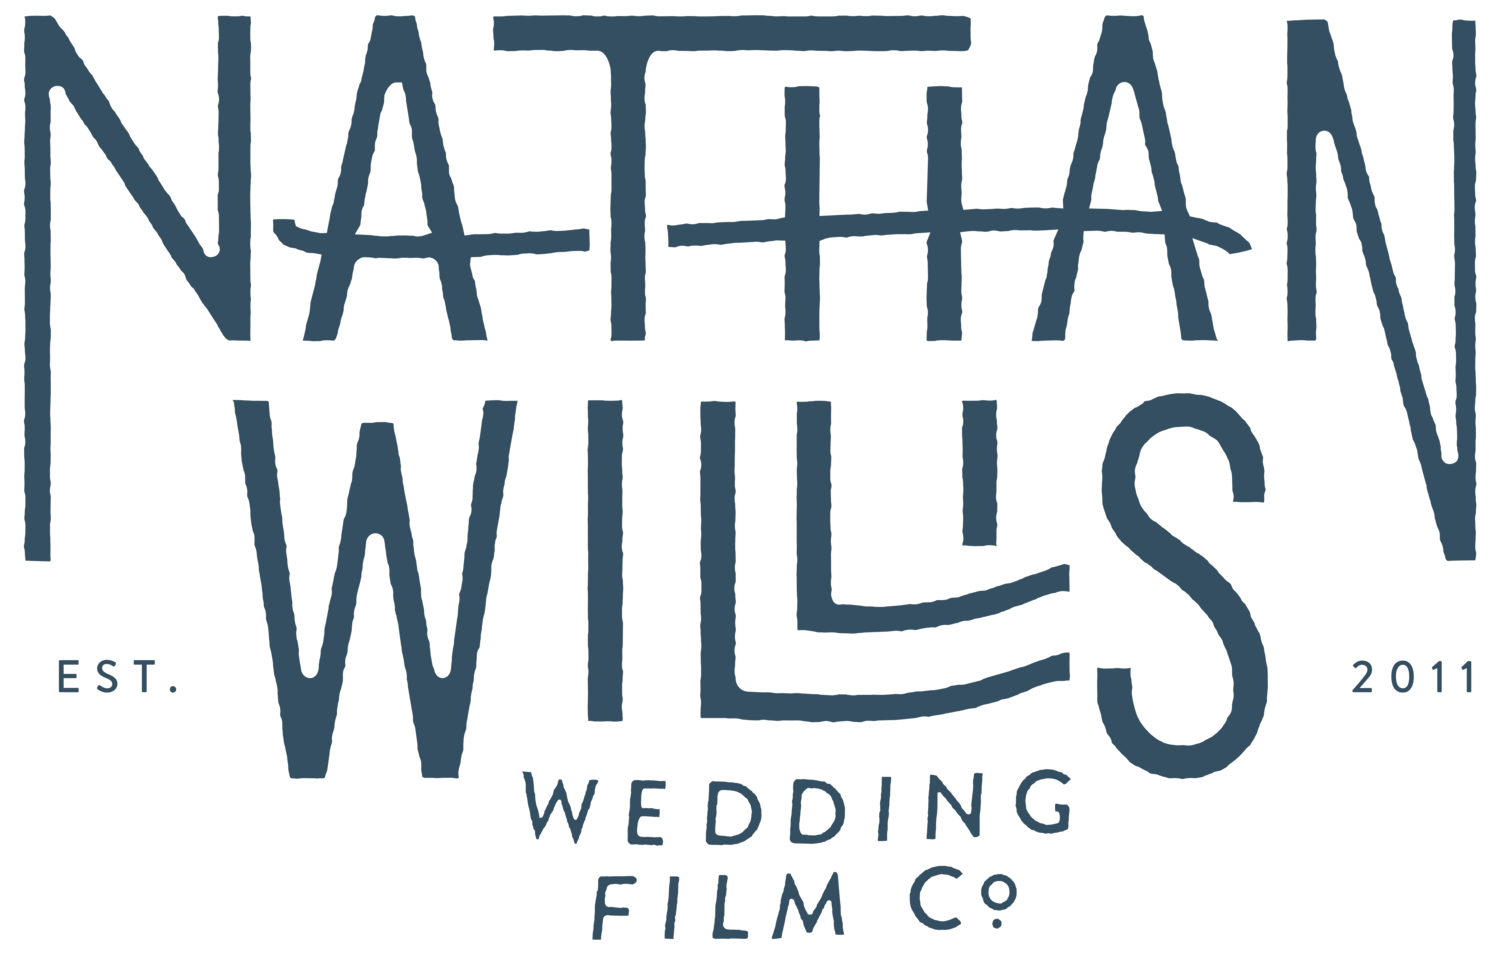 Texas Wedding Videographer - Arkansas Wedding Videographer - New Orleans Wedding Videography - Florida Videographer